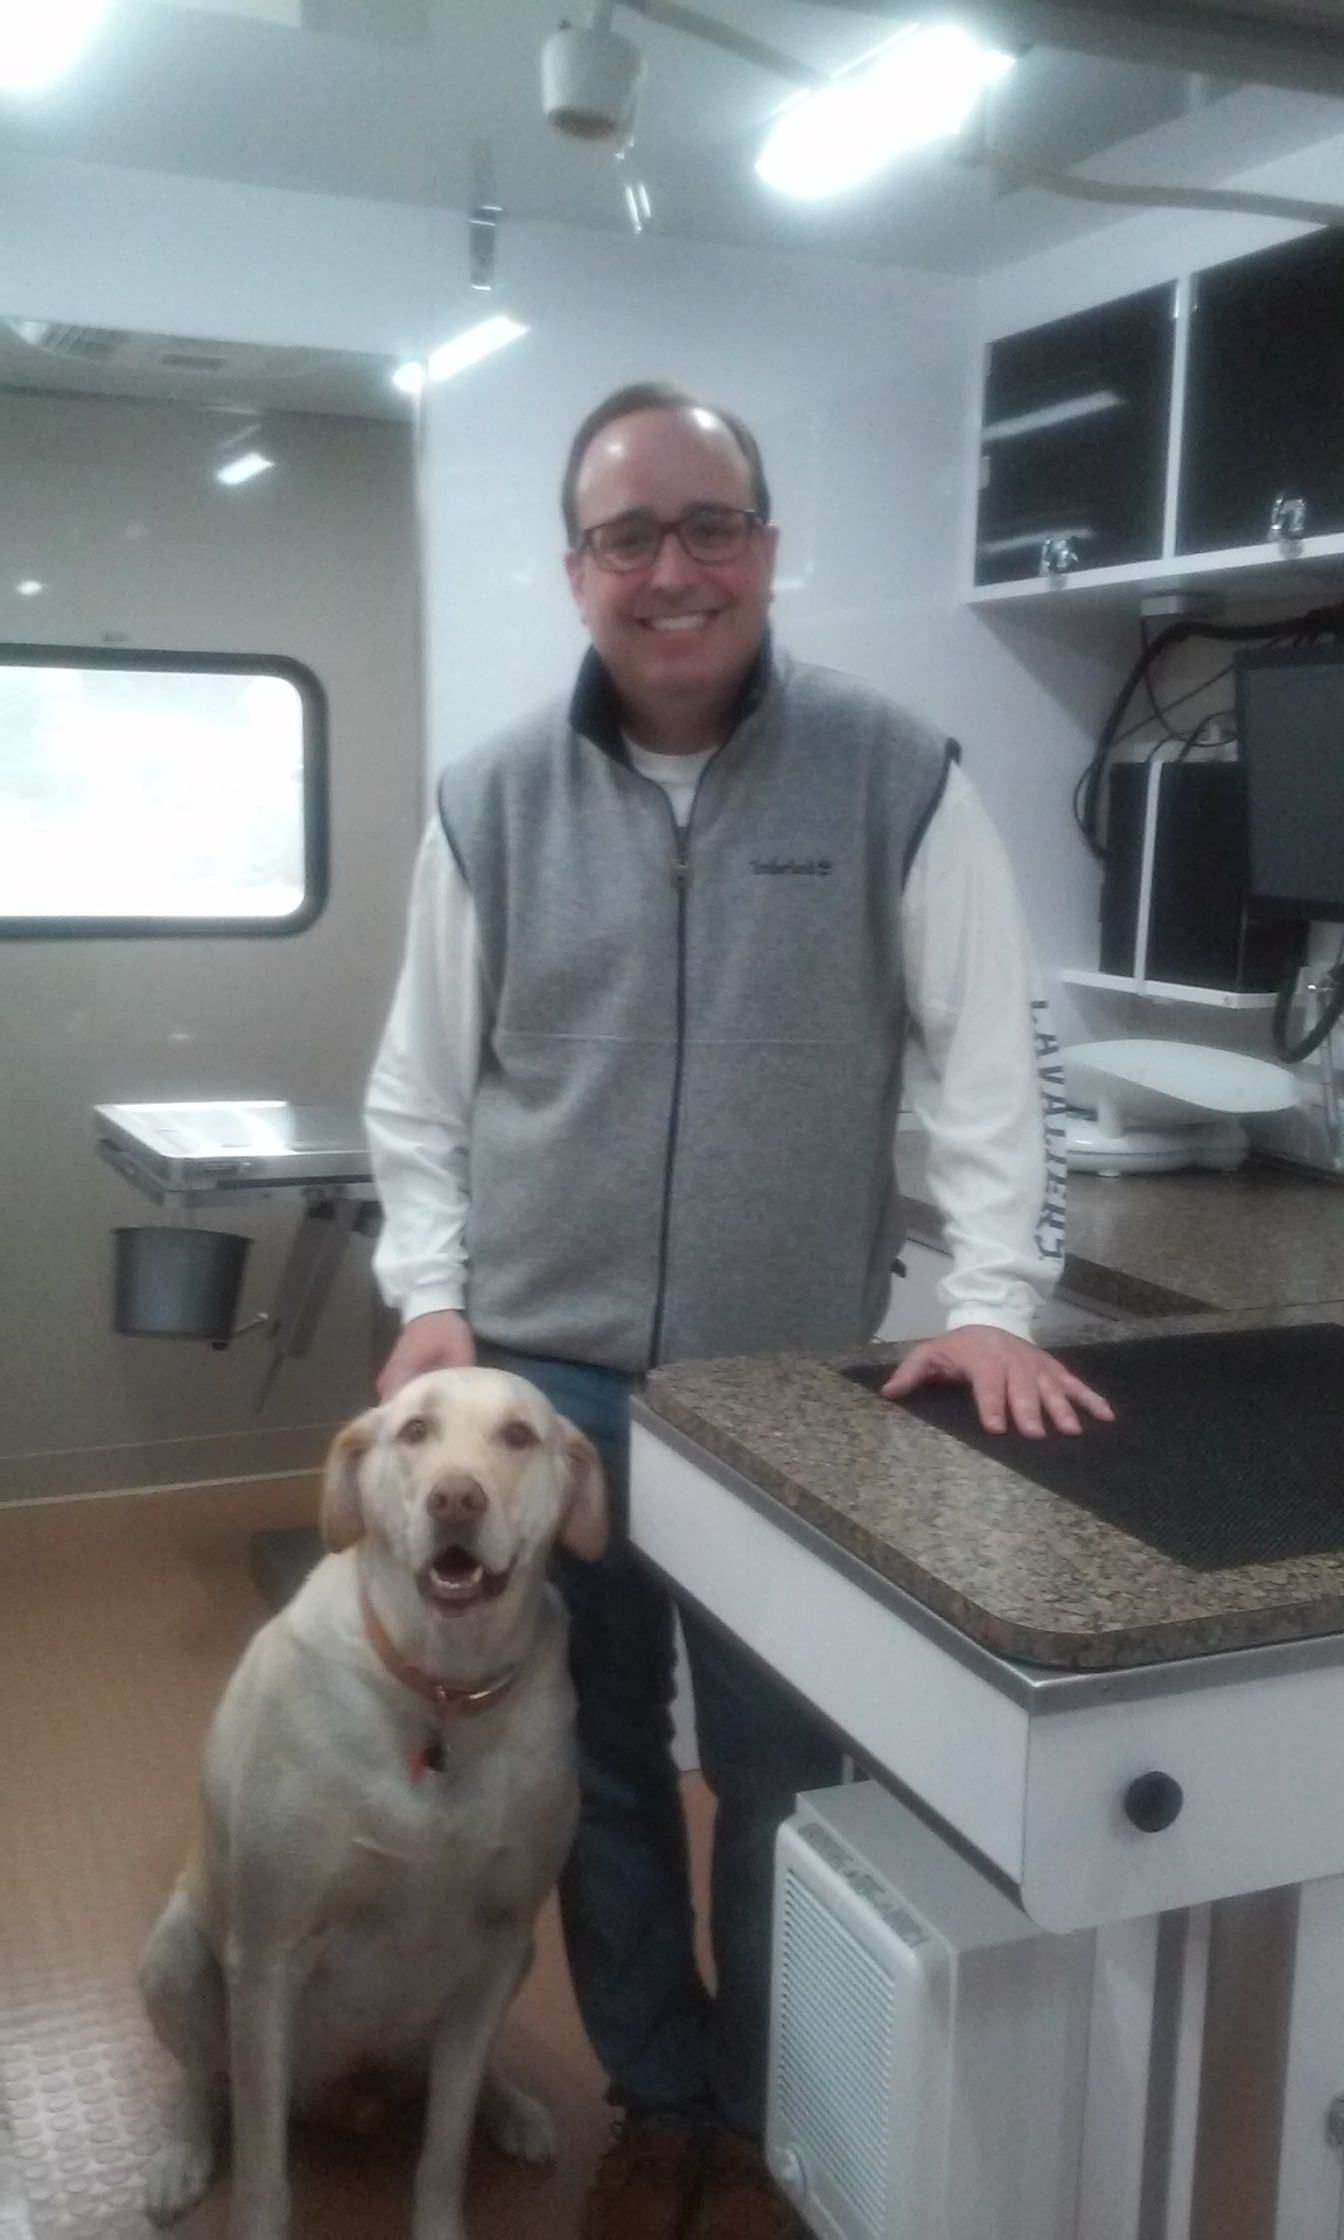 Dr. Mims and The MobileCare Veterinary Team, had a great